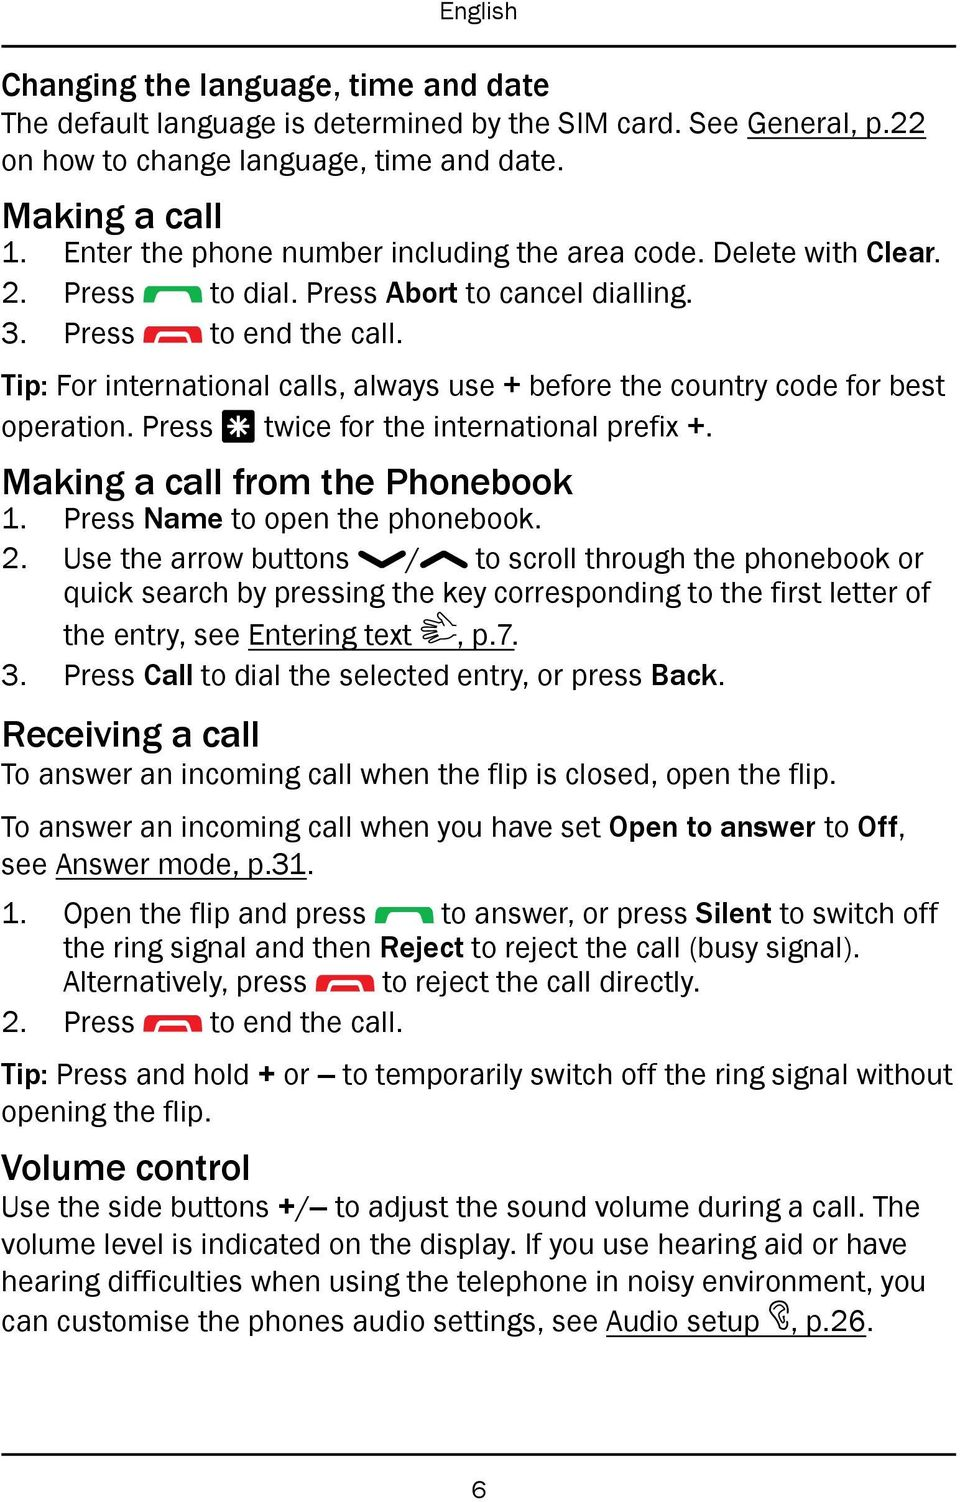 Tip: For international calls, always use + before the country code for best operation. Press * twice for the international prefix +. Making a call from the Phonebook 1.